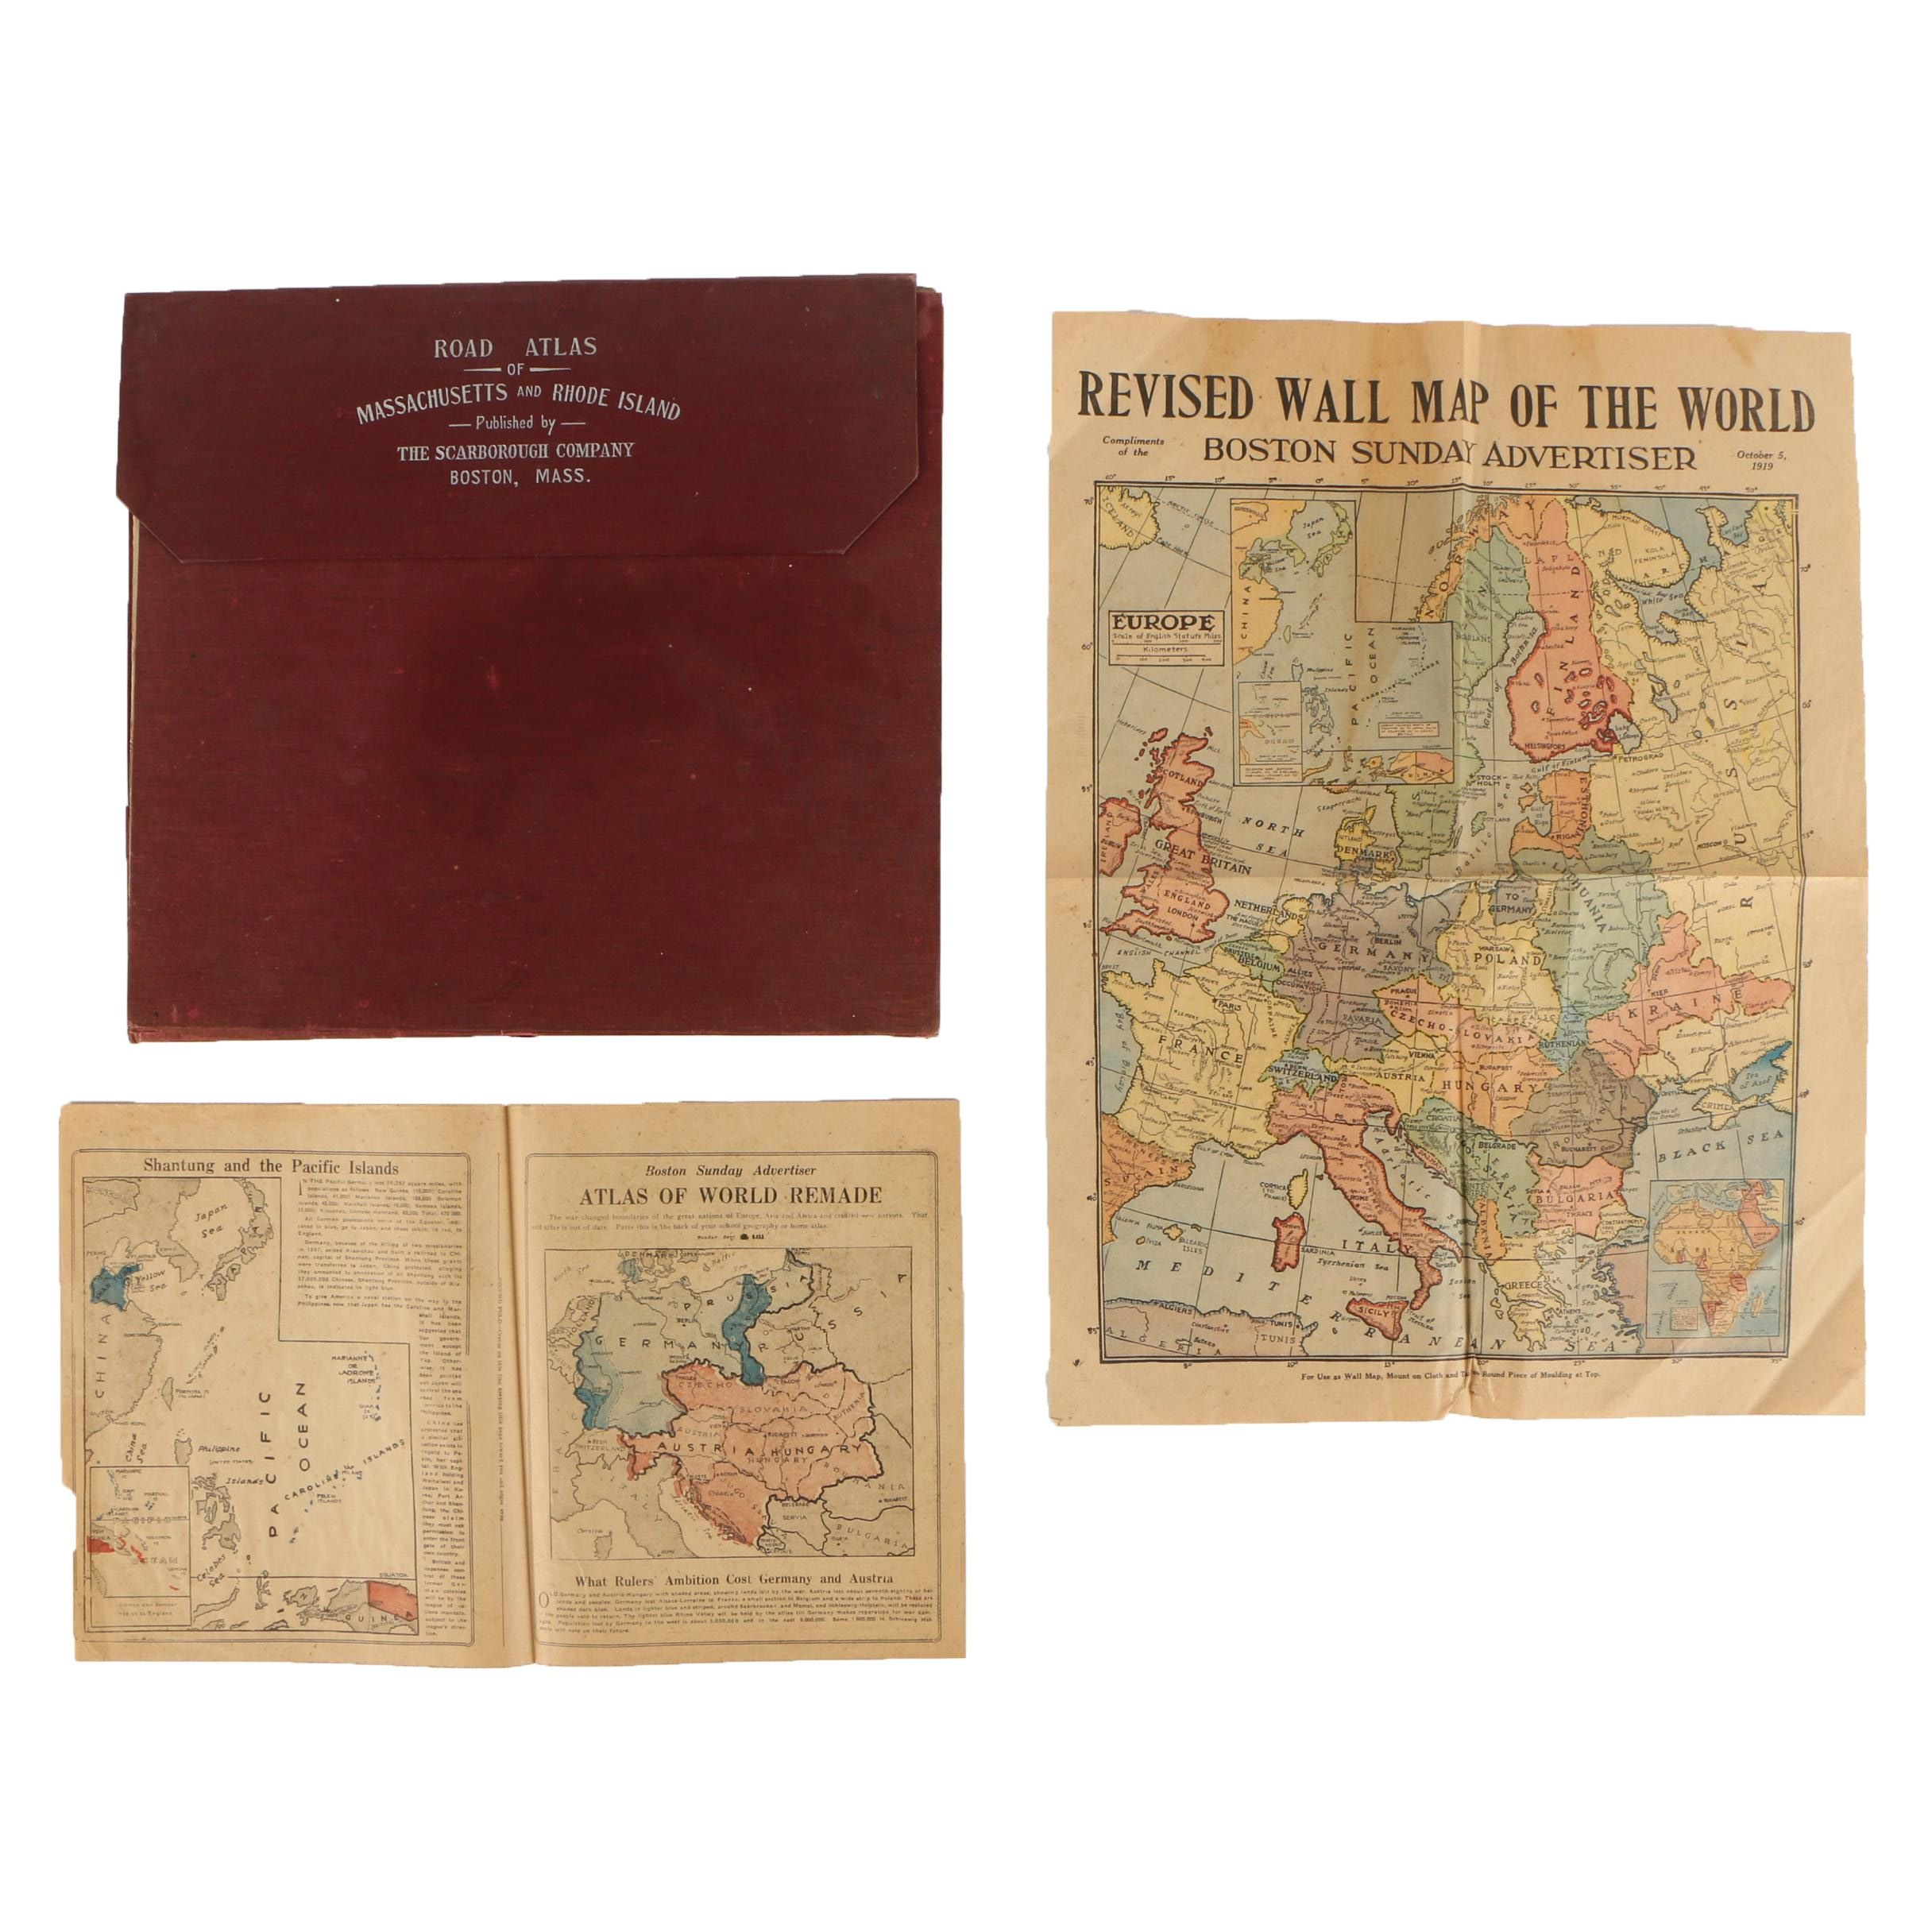 1905 Road Atlas of Massachusetts and Rhode Island and 1919 Maps of Europe